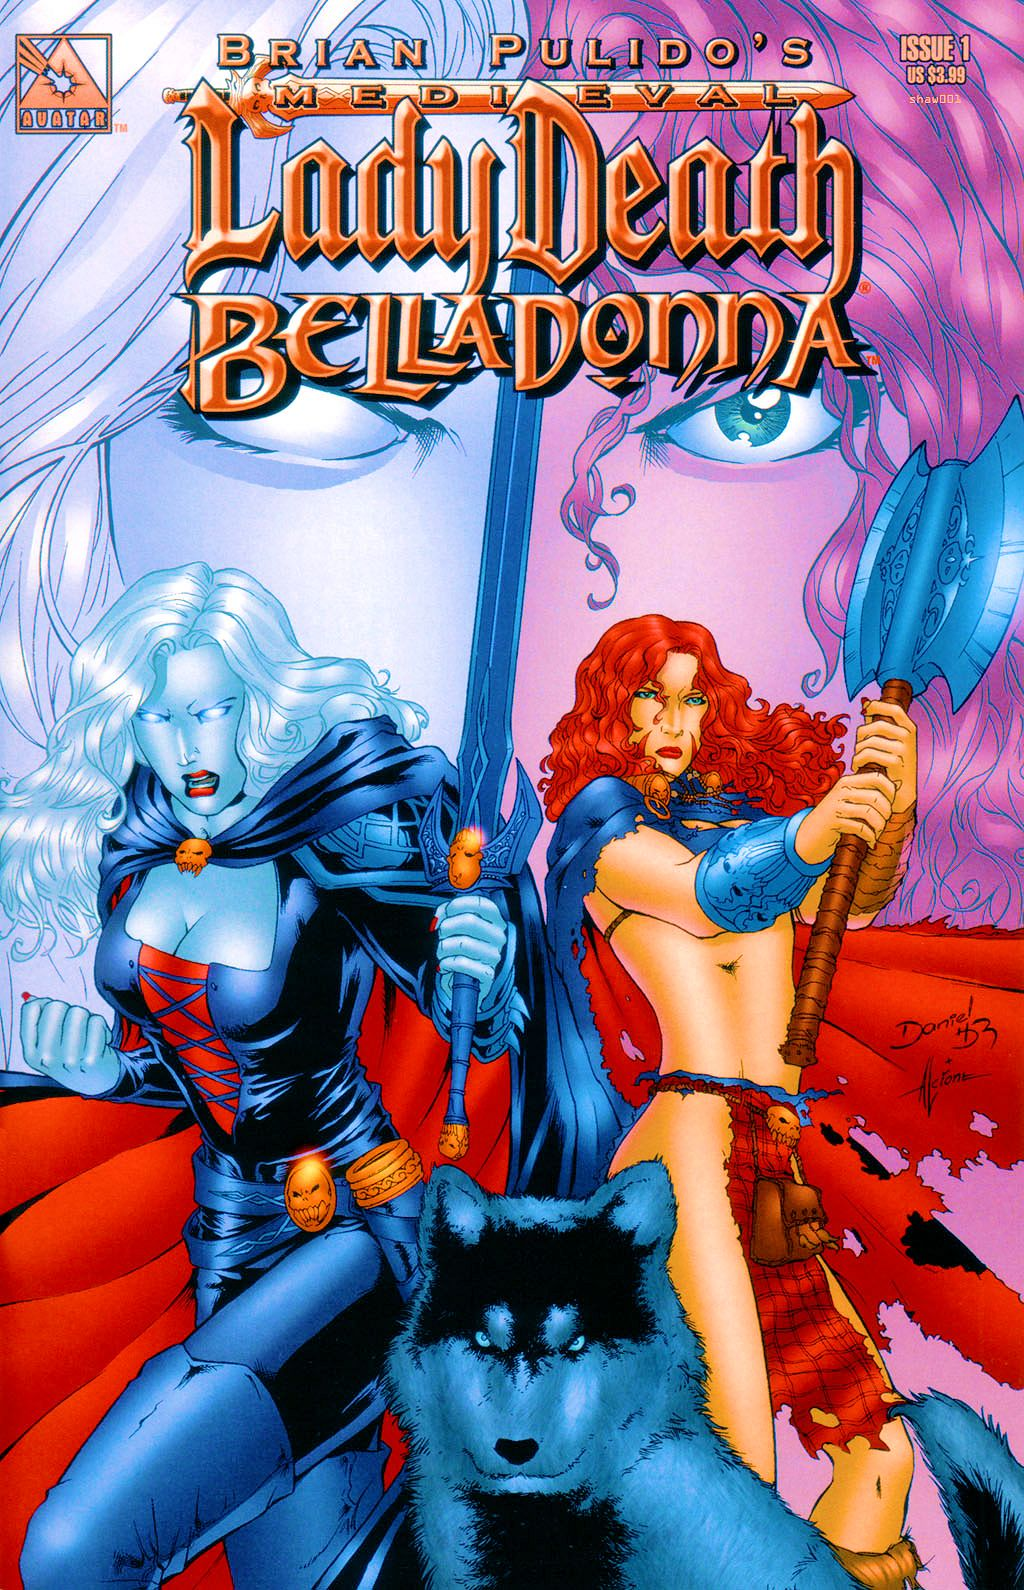 Read online Brian Pulido's Medieval Lady Death Belladonna comic -  Issue #1 - 1